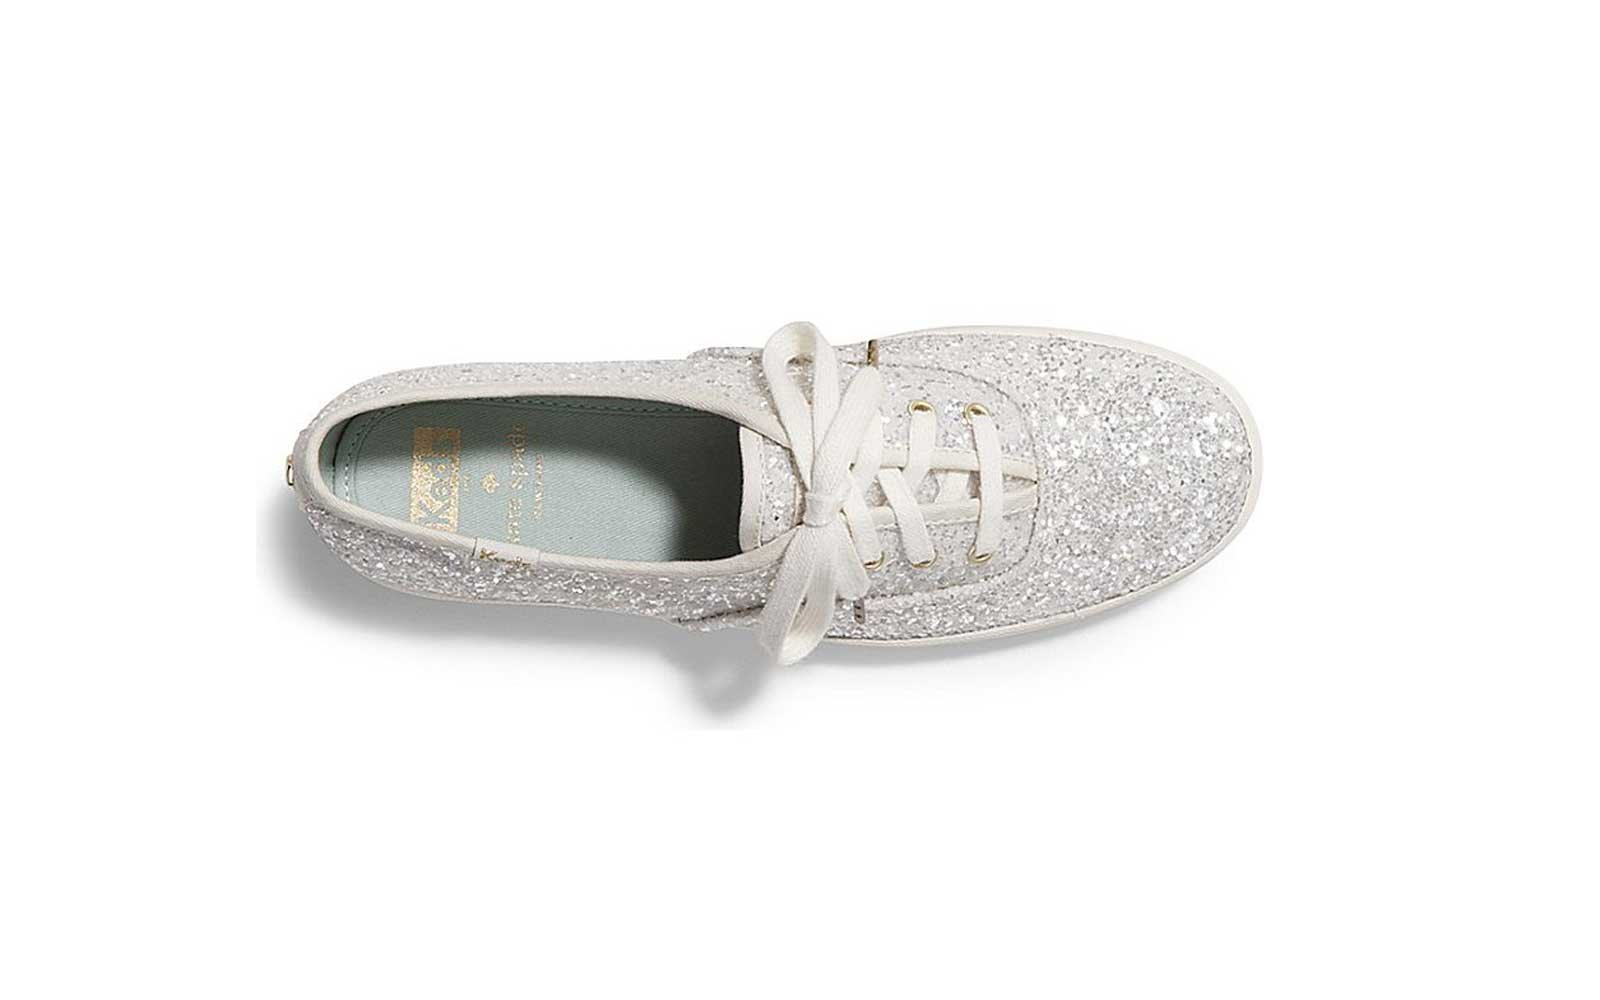 Keds for Kate Spade New York Glitter Keds Sneakers